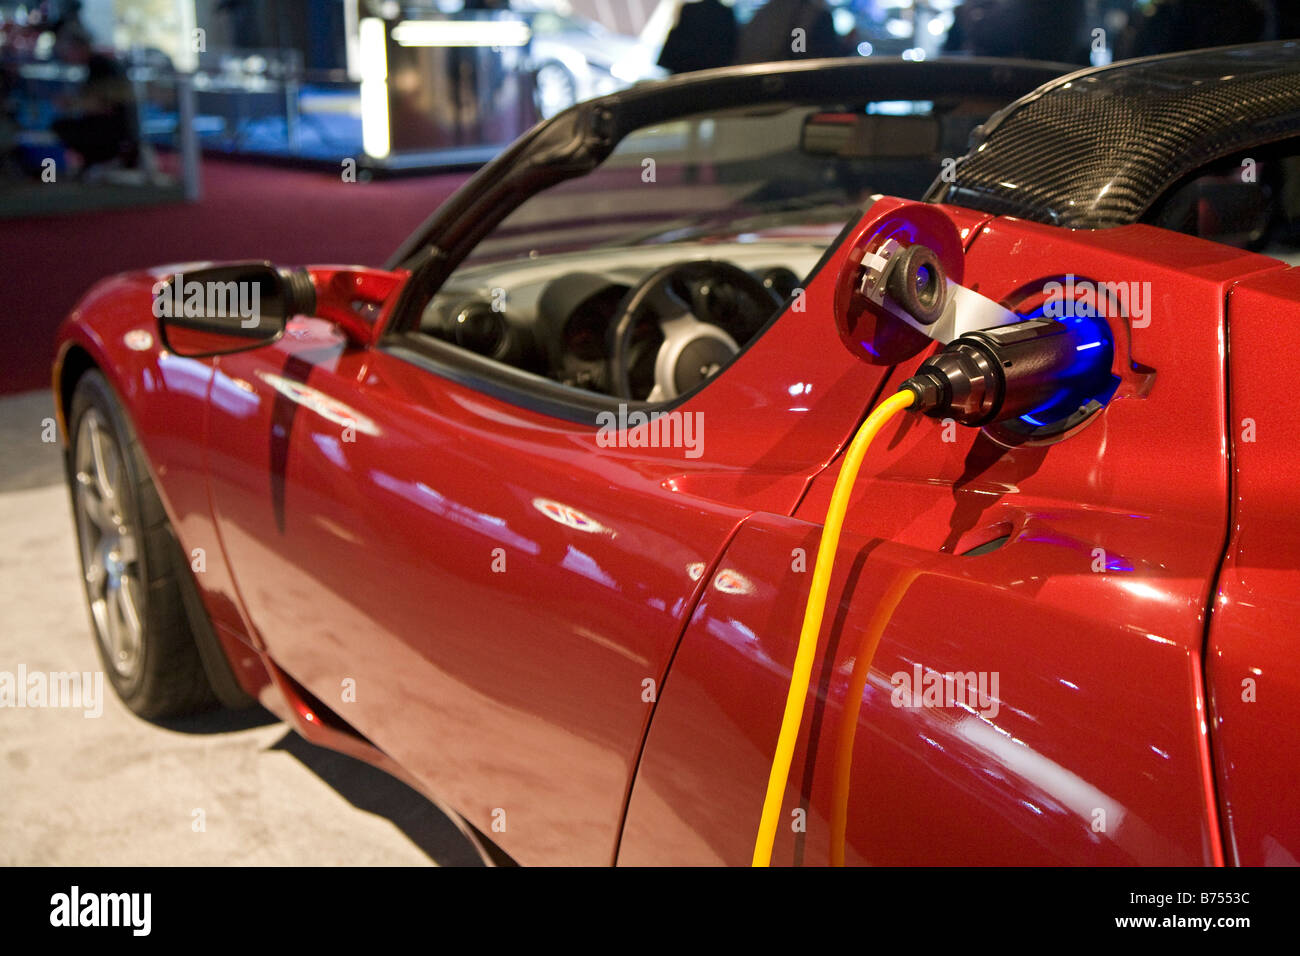 Detroit Michigan The Tesla Roadster electric vehicle on display at the North American International Auto Show - Stock Image